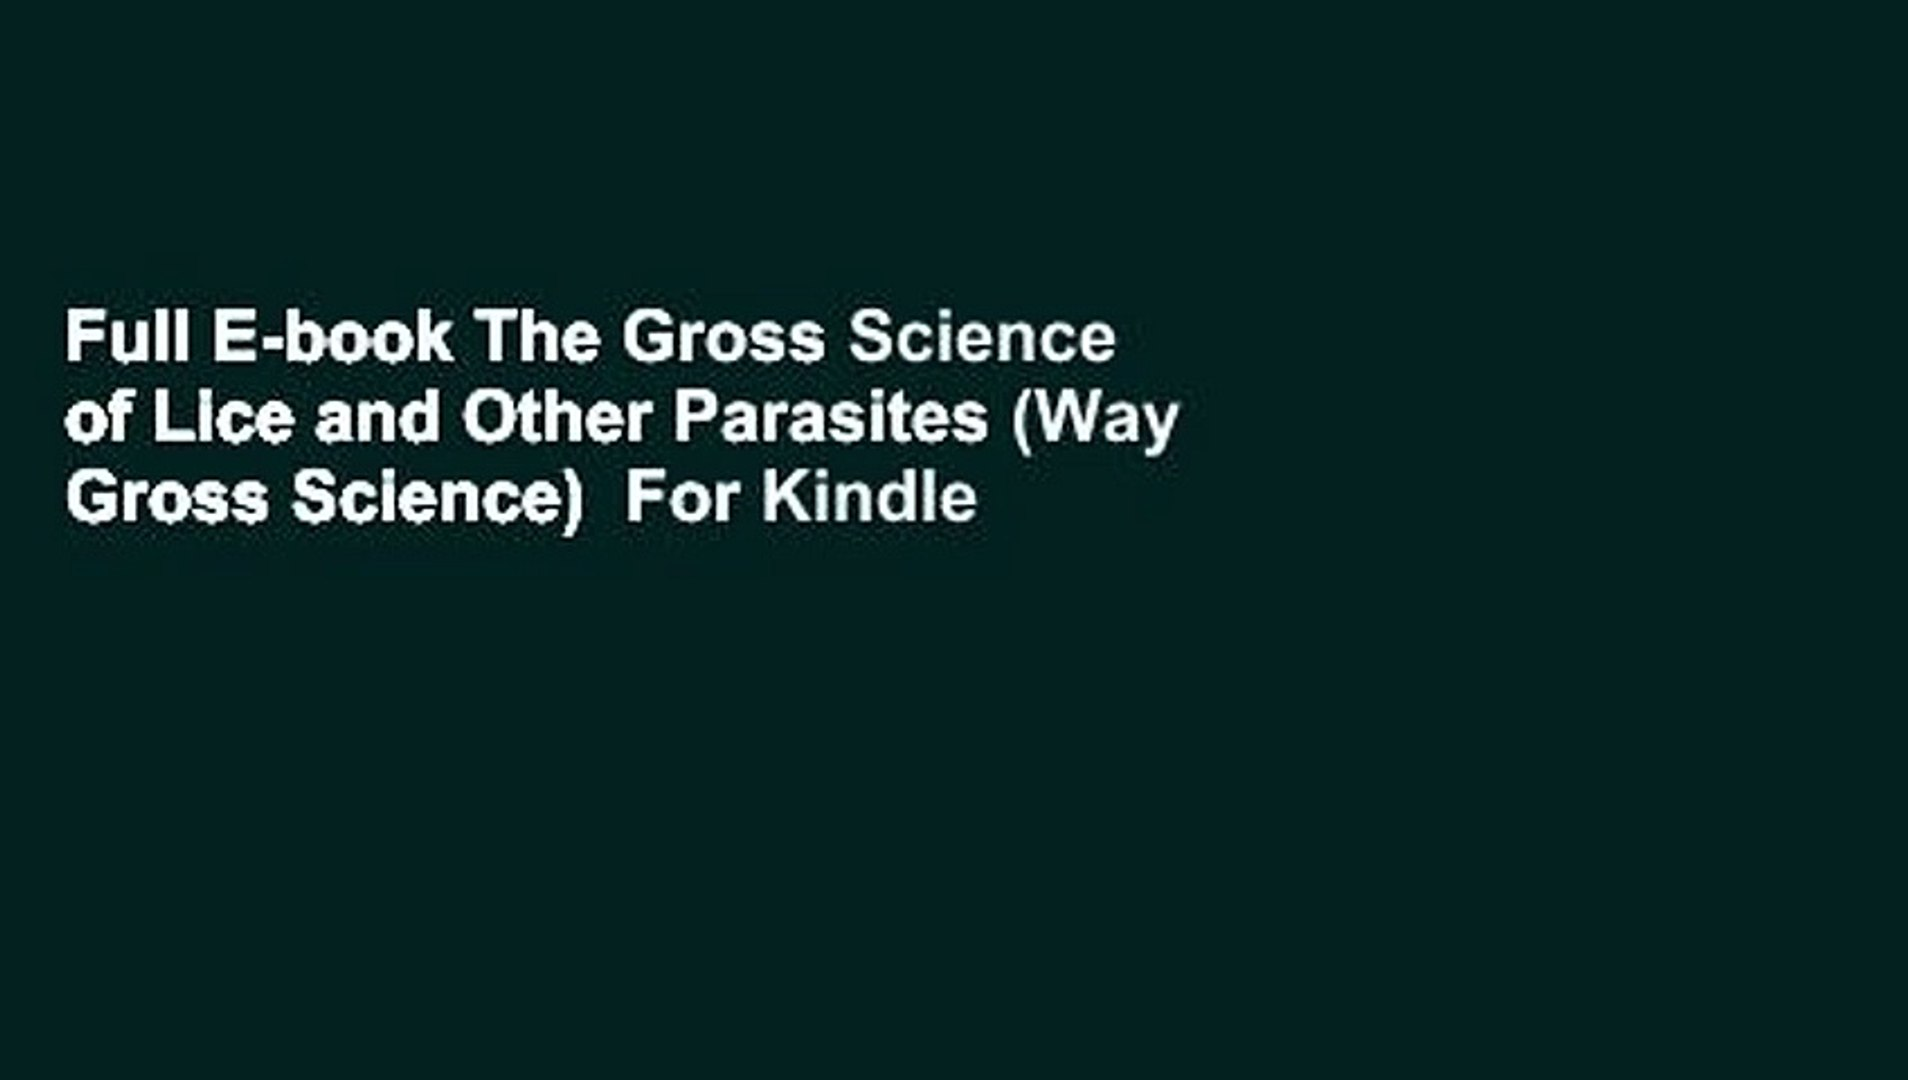 Full E-book The Gross Science of Lice and Other Parasites (Way Gross Science)  For Kindle